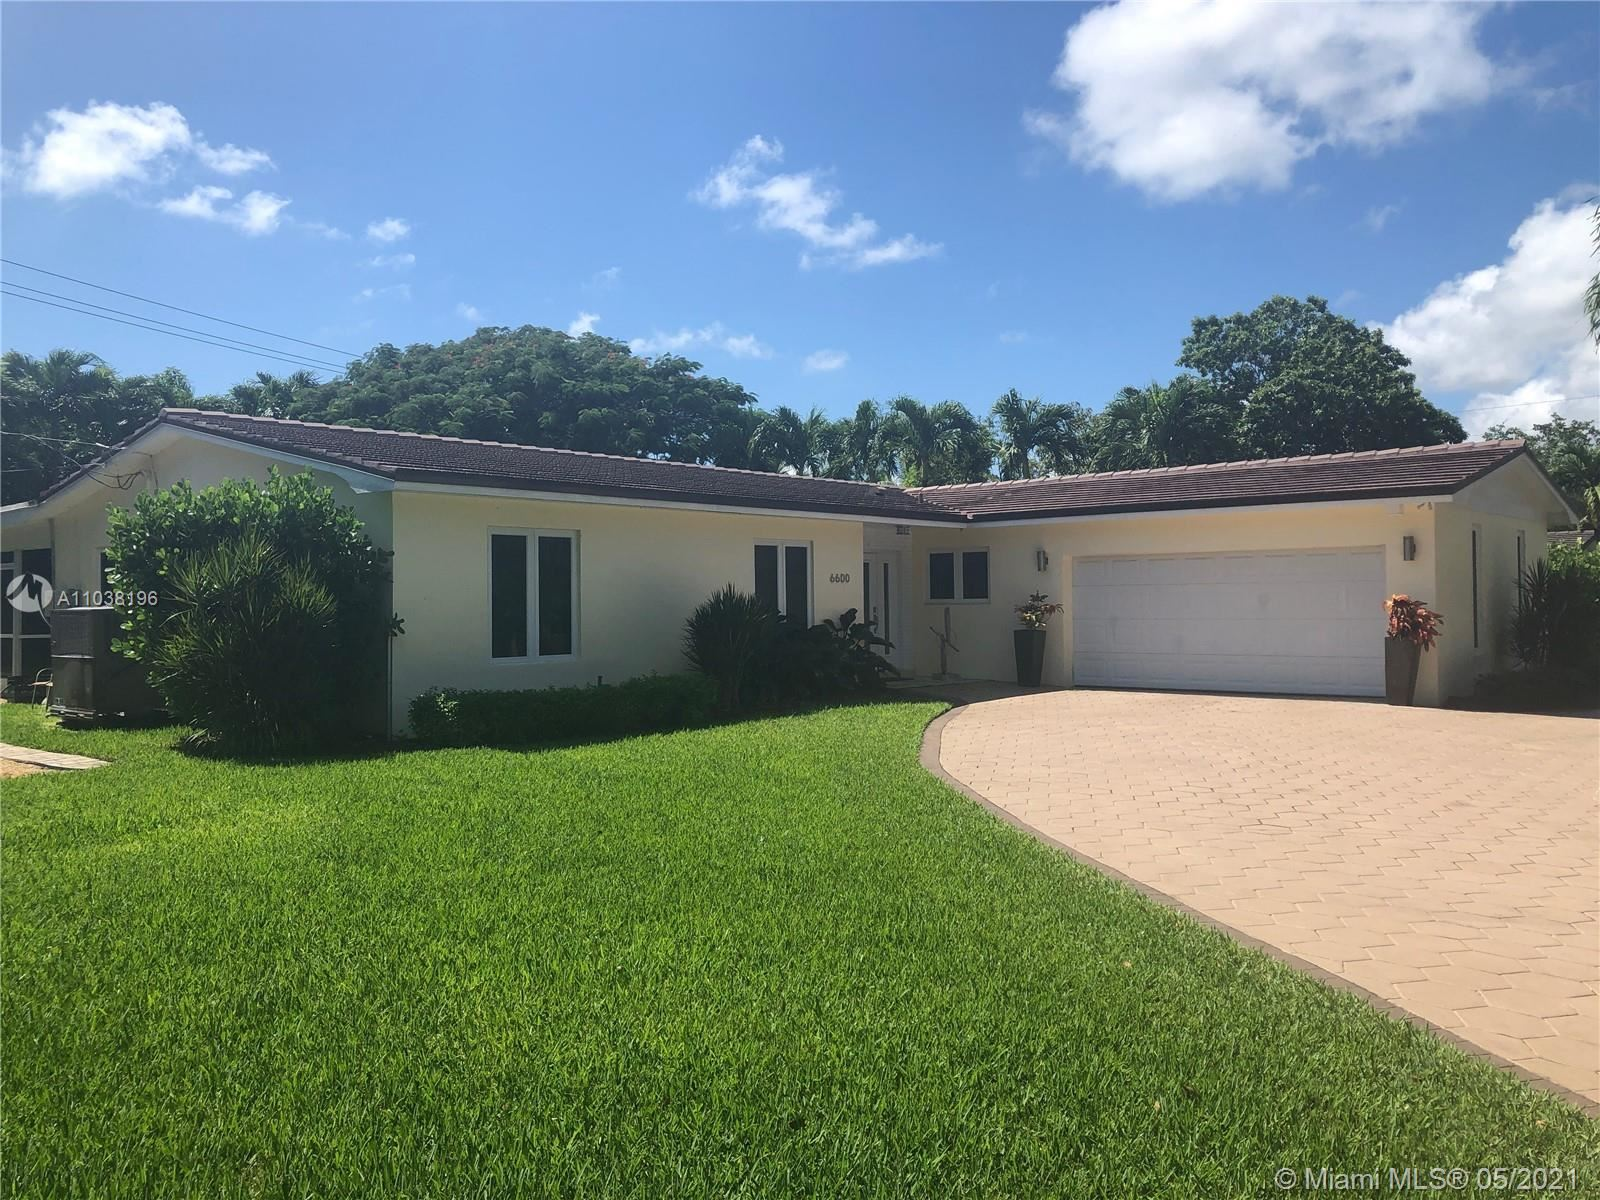 Photo of 6600 SW 144 St, Coral Gables, FL 33158 (MLS # A11038196)